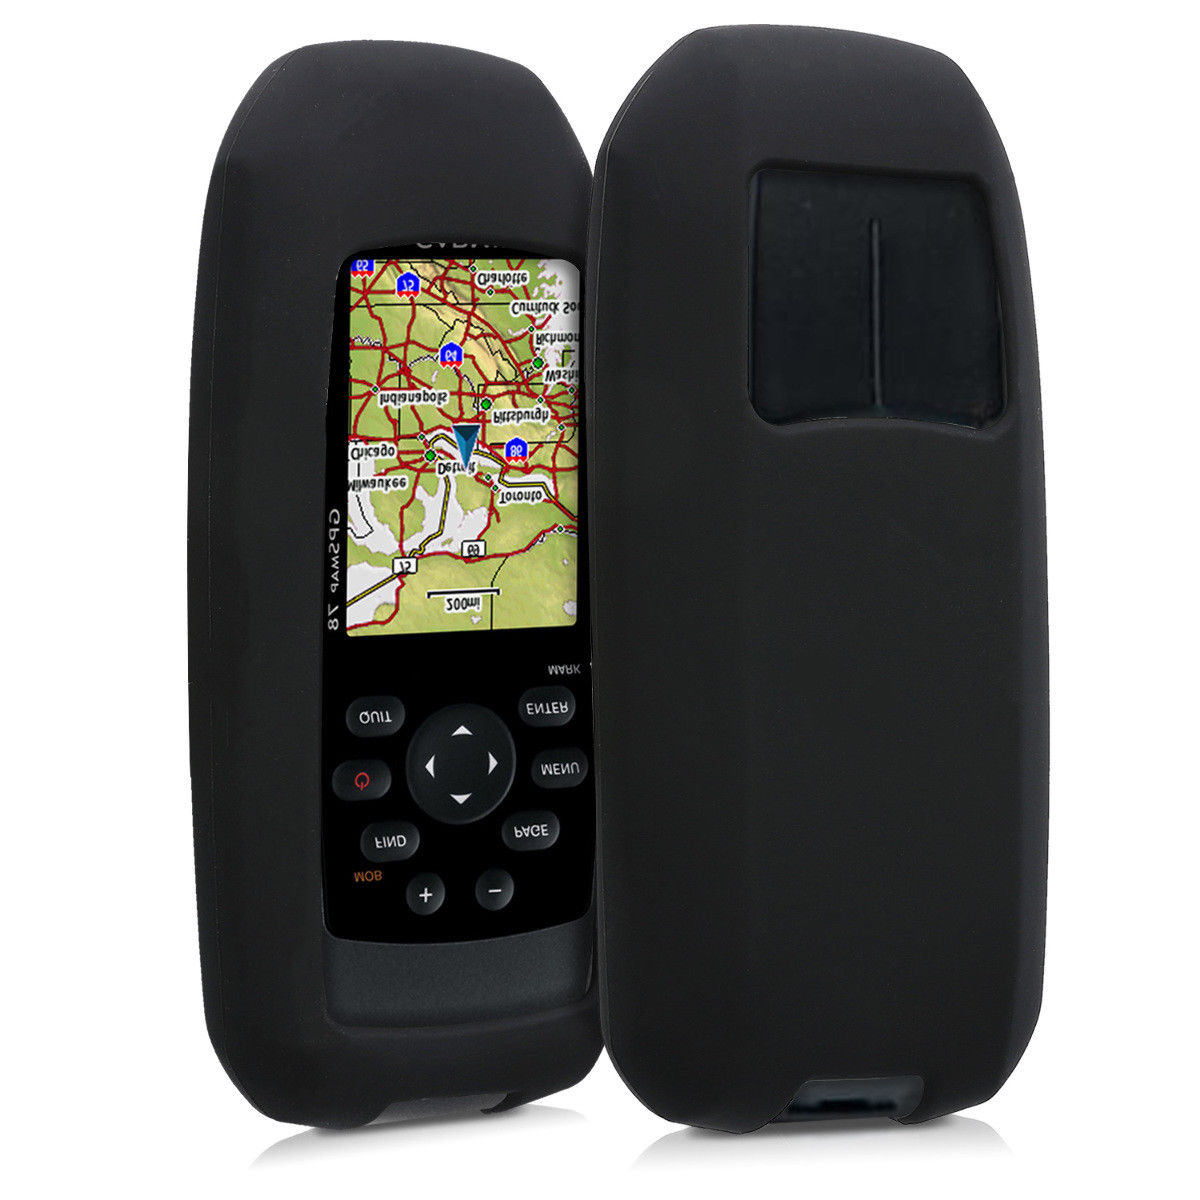 Silicon Black Case Protect Skin Cover for Garmin GPSMap 78 78s 73 AccessoriesSilicon Black Case Protect Skin Cover for Garmin GPSMap 78 78s 73 Accessories